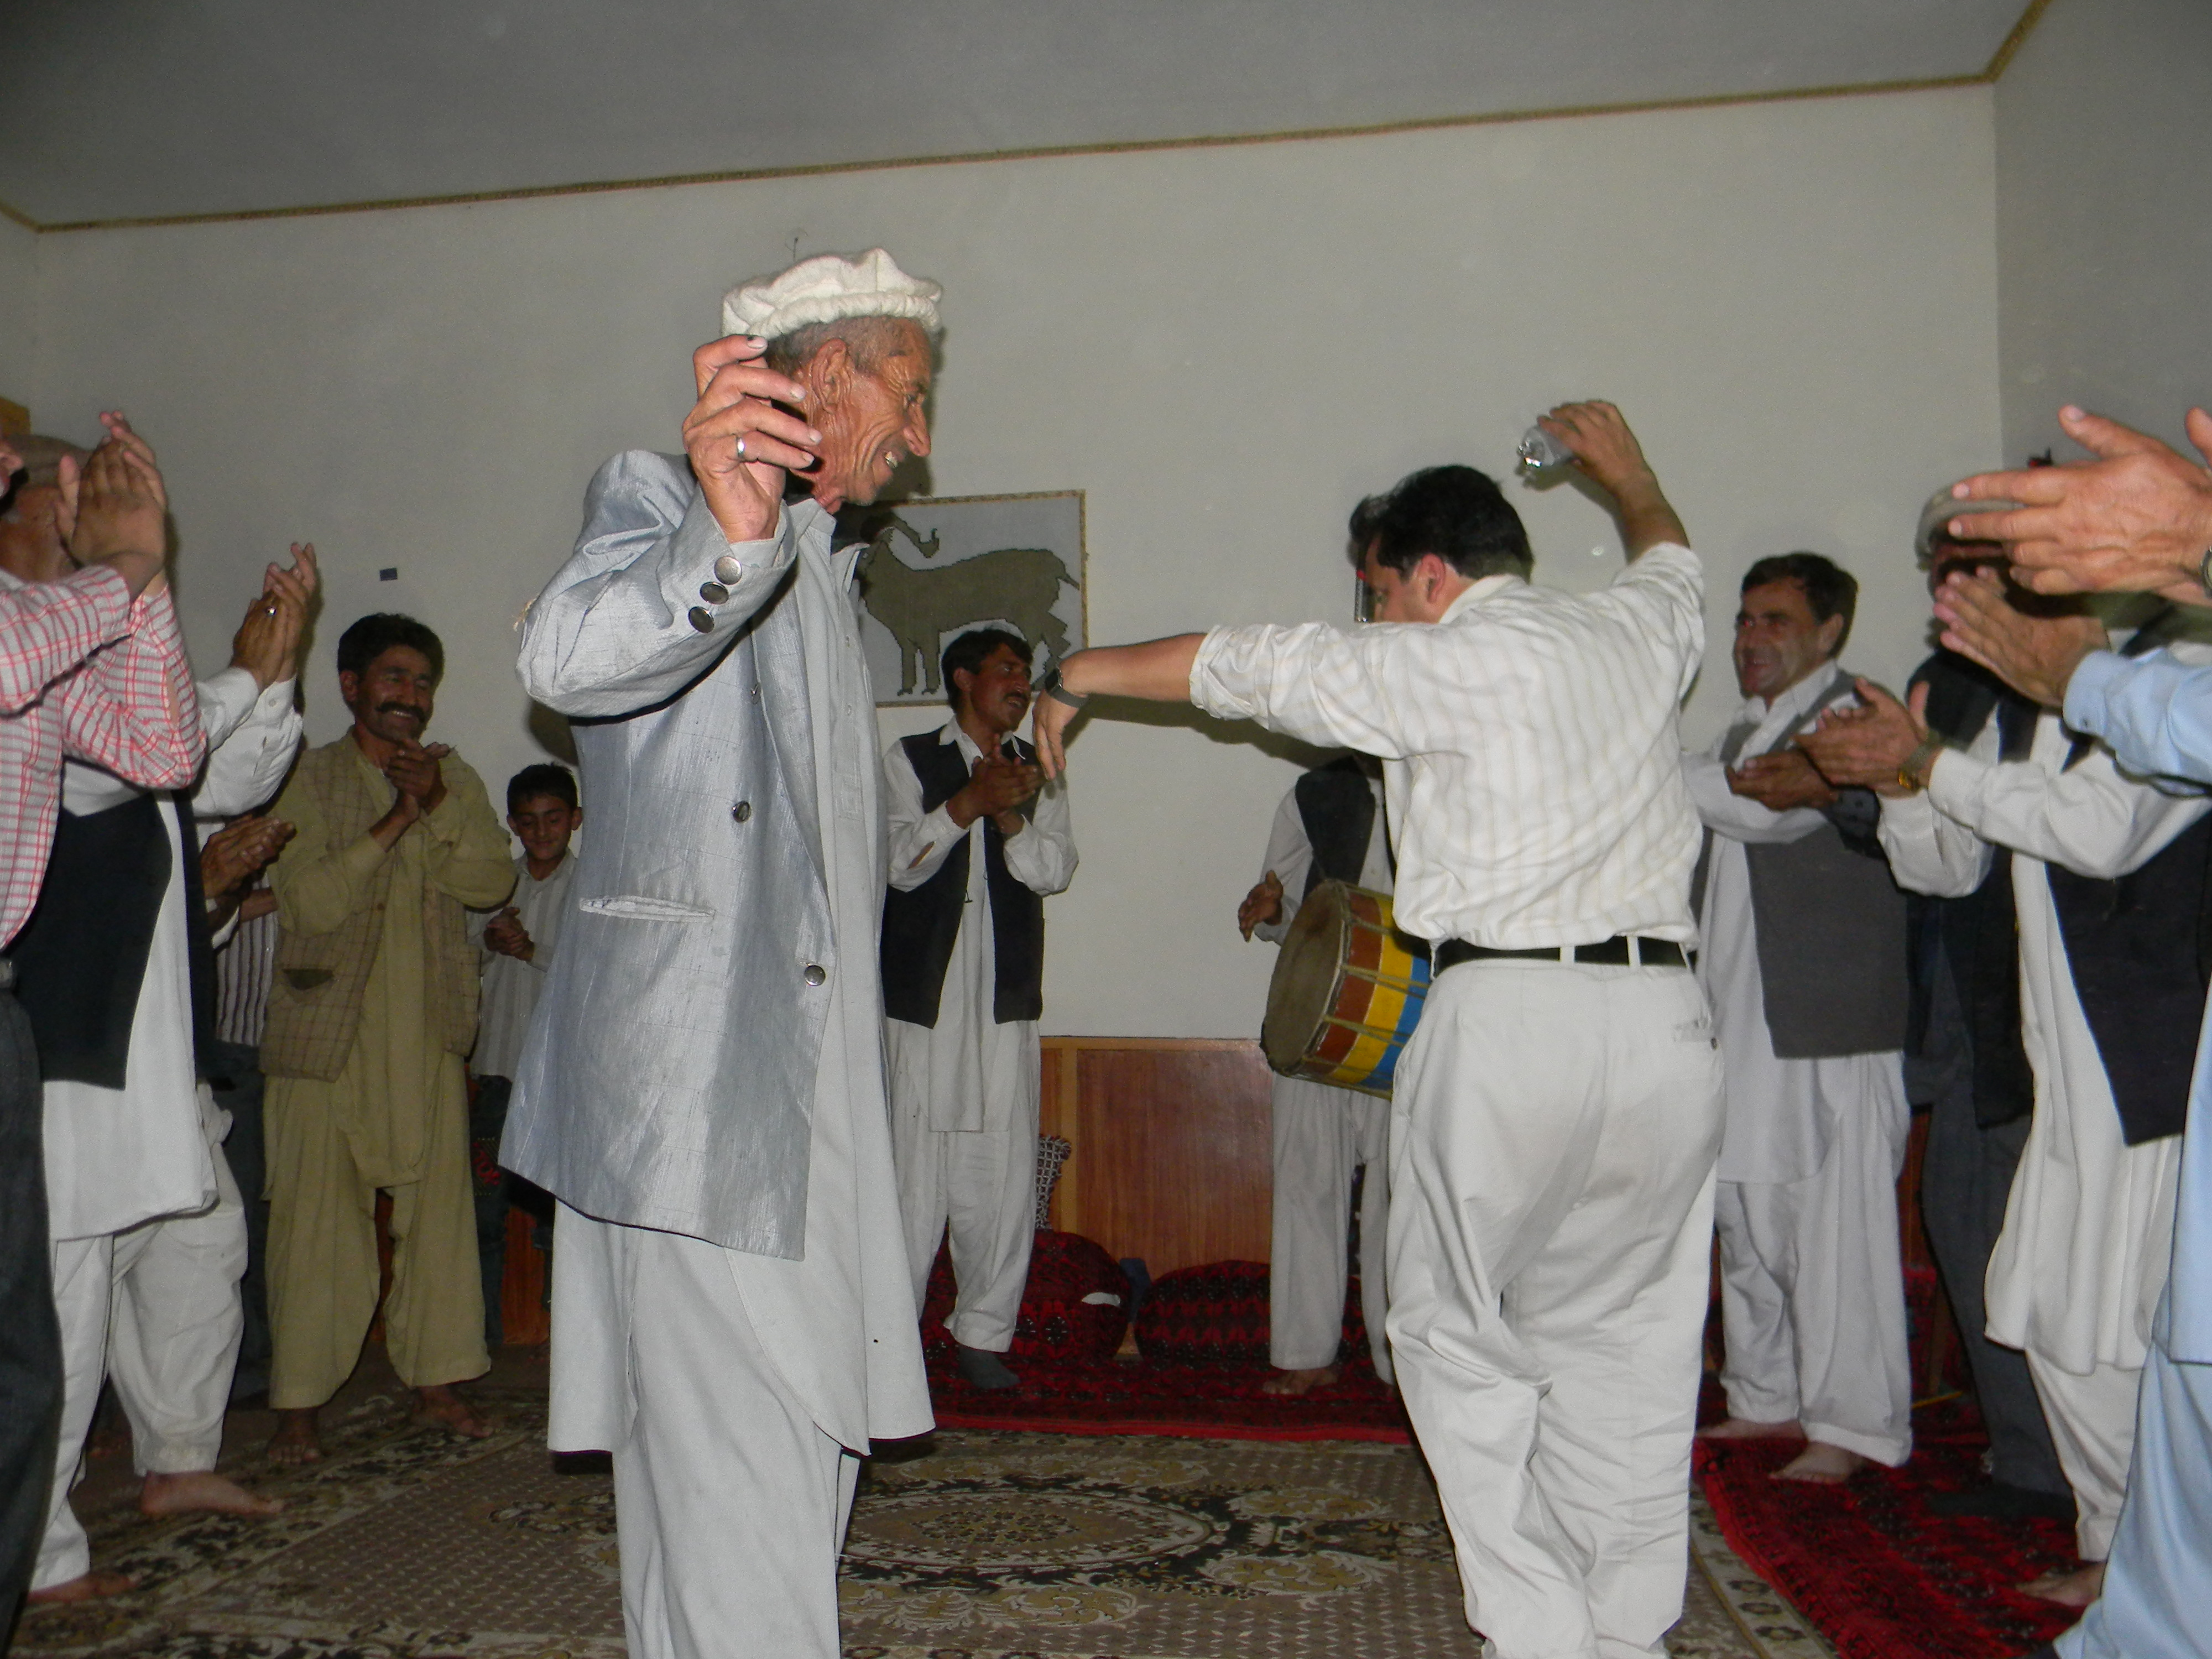 Hundur_men dancing during traditional music and song performance